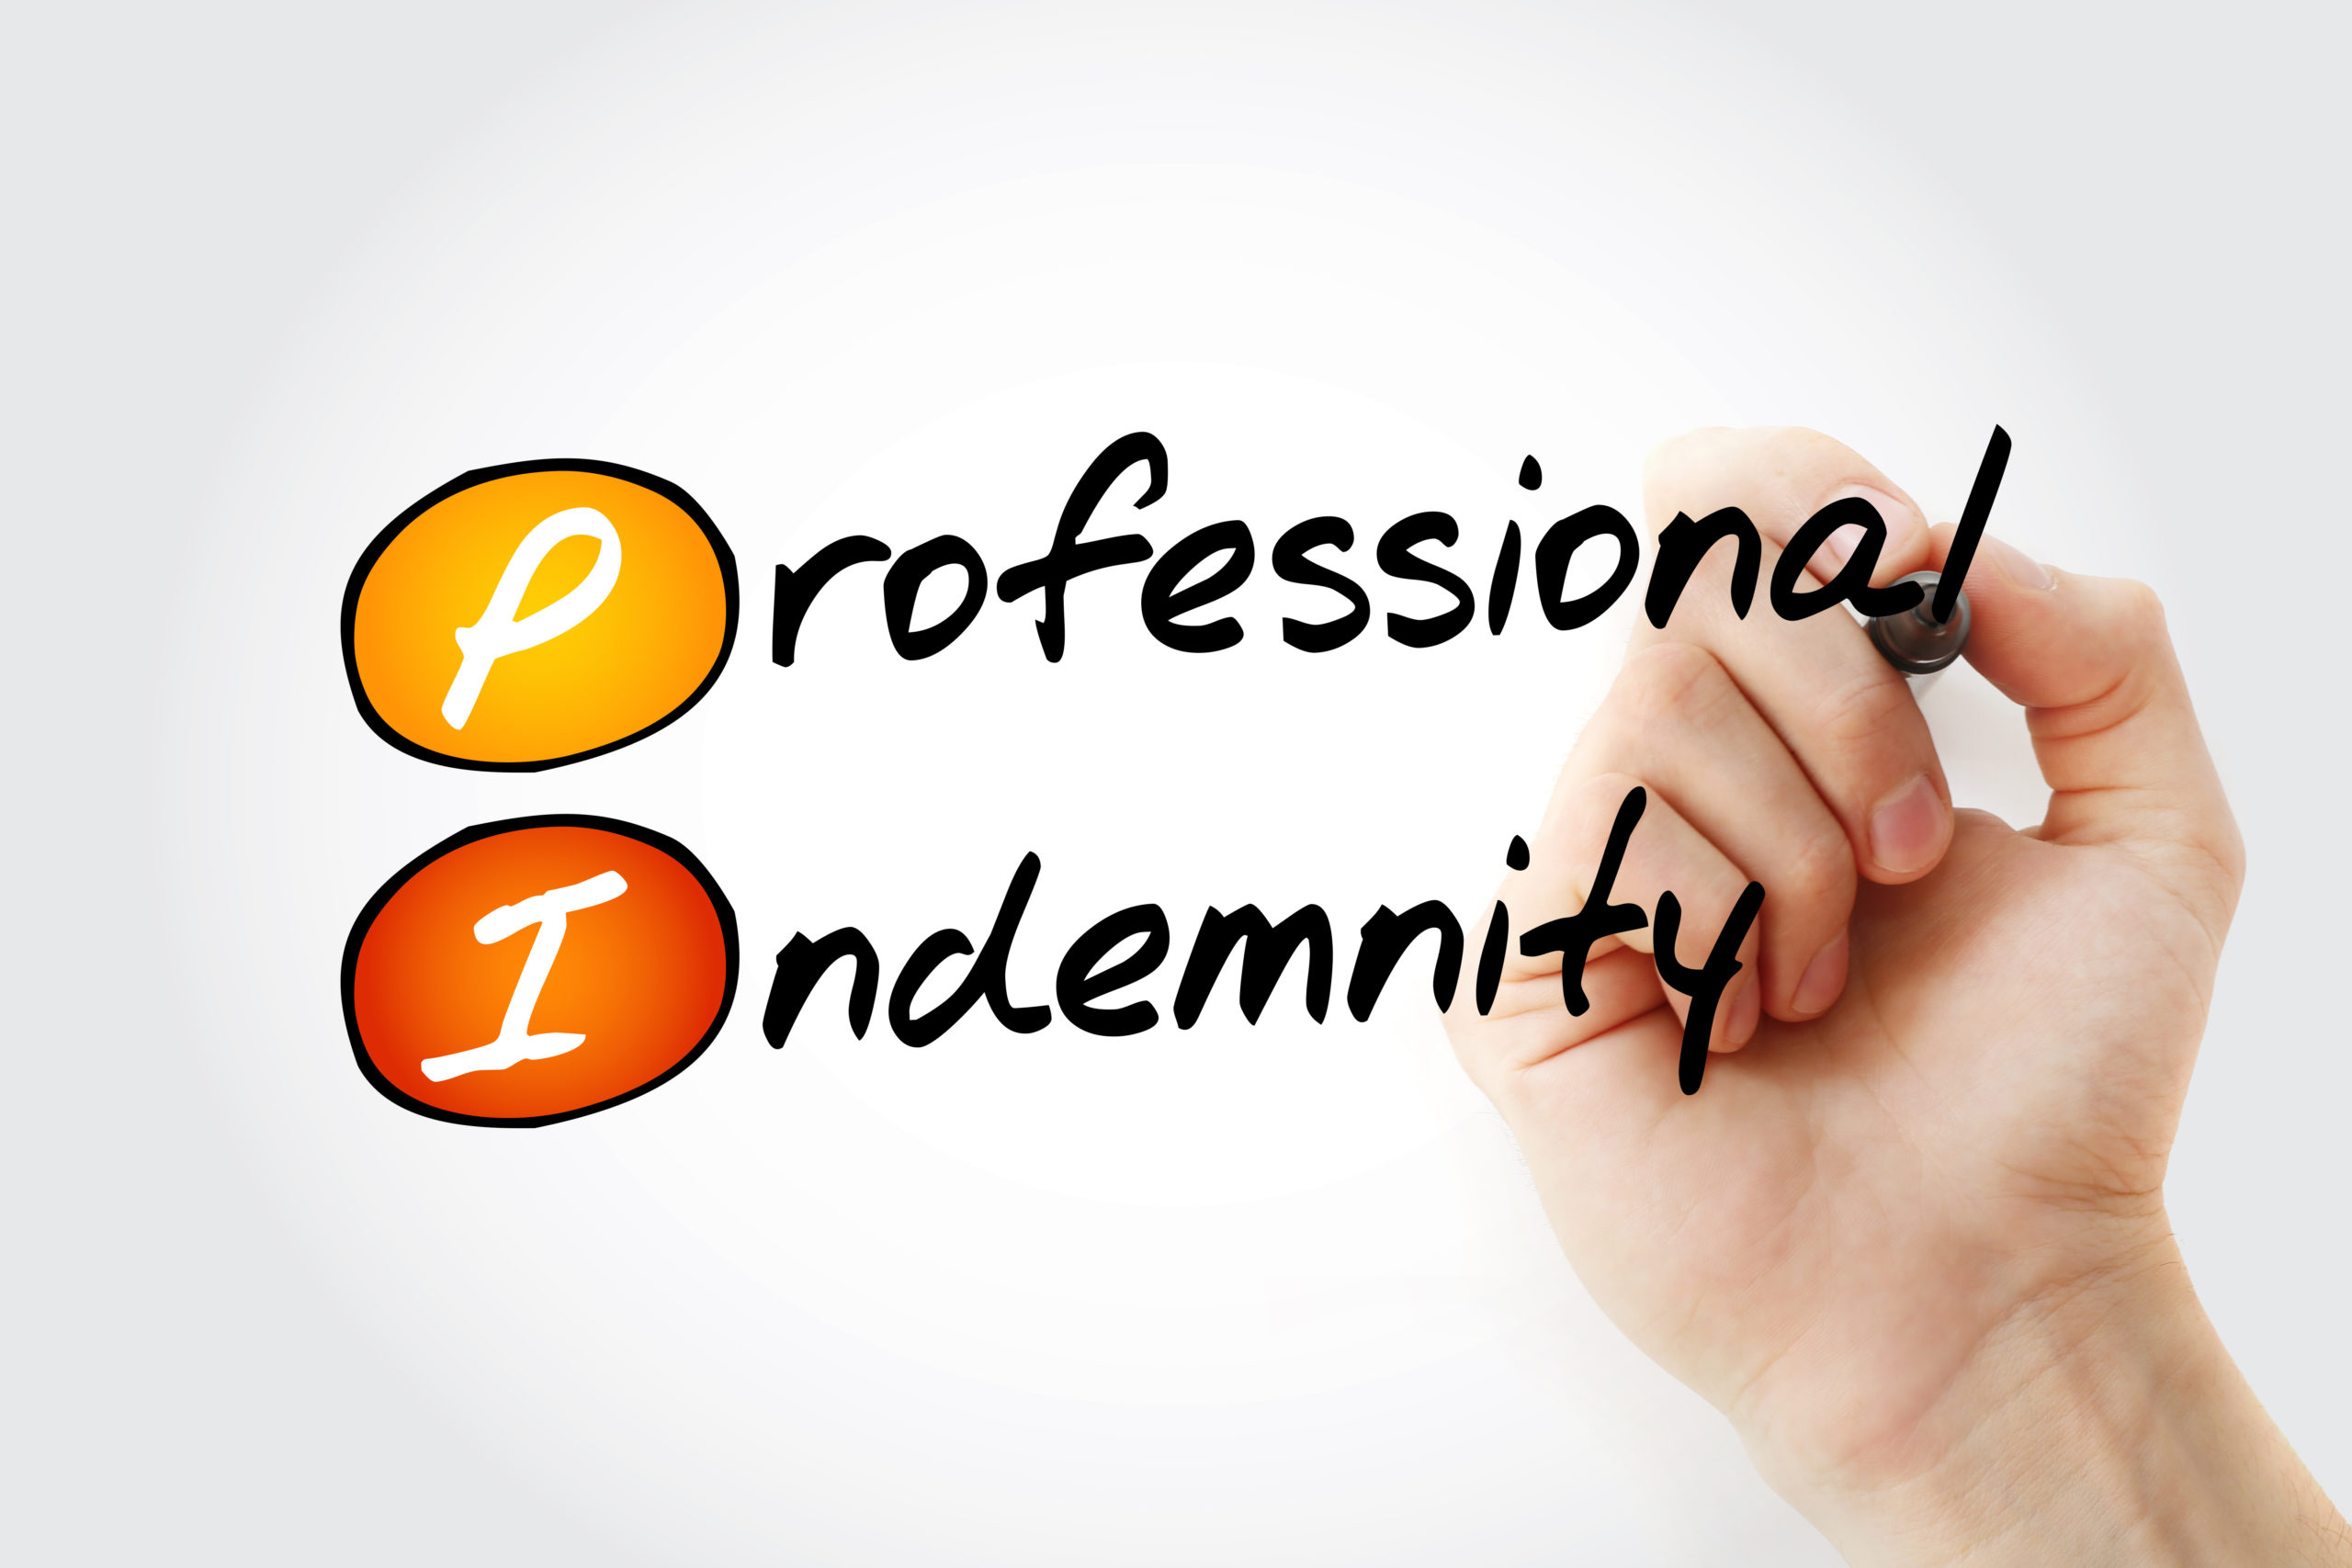 Professional Indemnity Concept